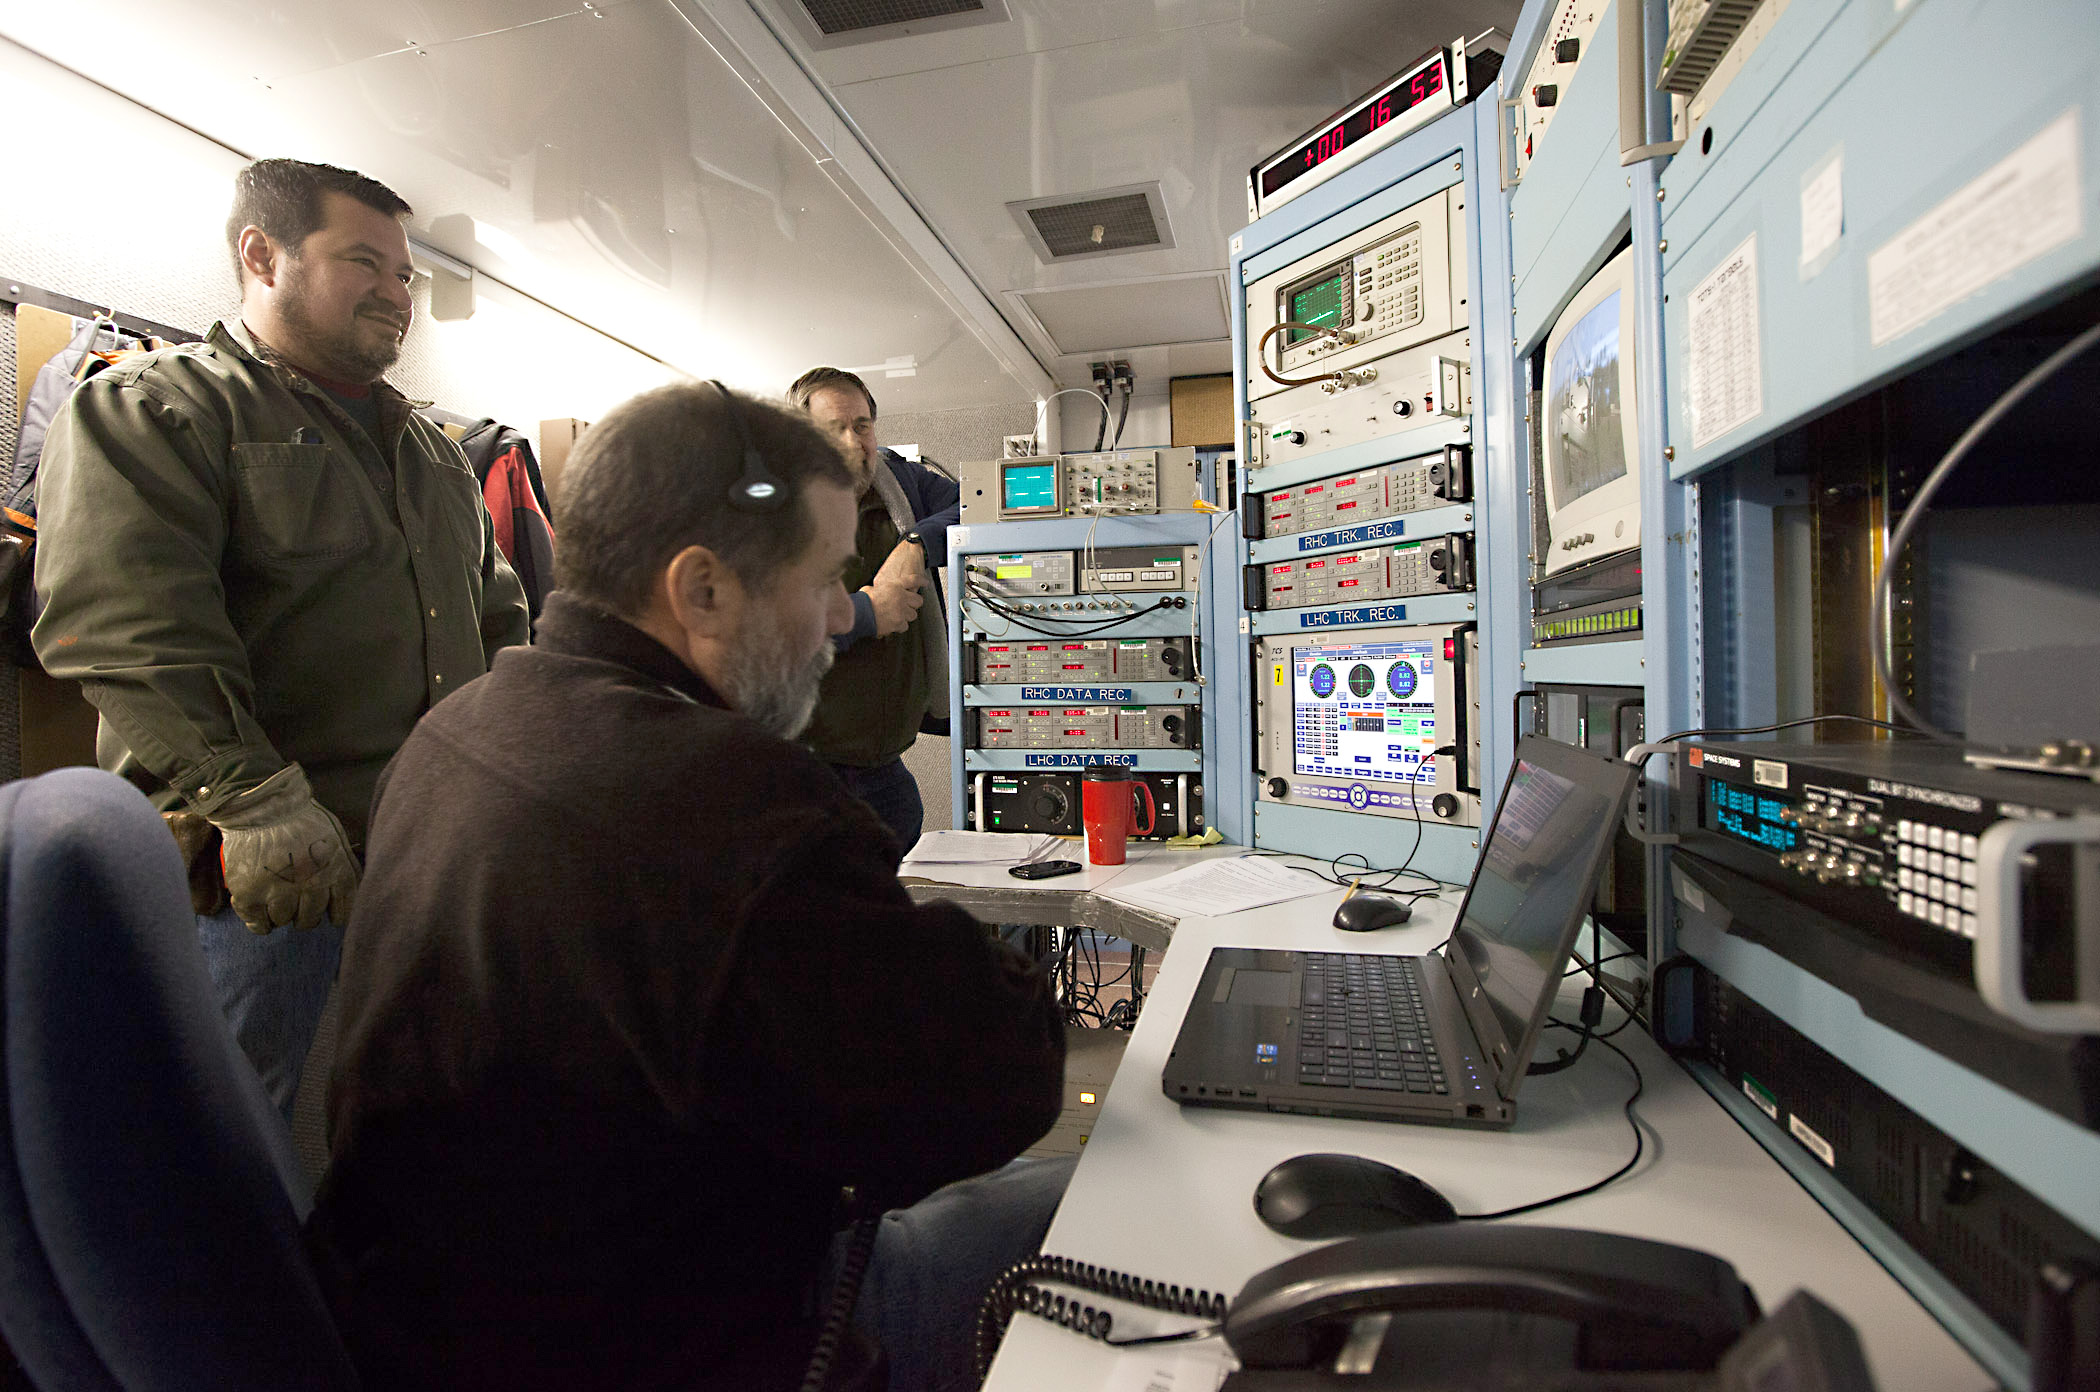 (8448618386).jpg On the night of Feb. 2, 2013, a team of NASA scientists waited in Poker Flats, Alaska to see if conditions were right to launch the VISIONS sounding